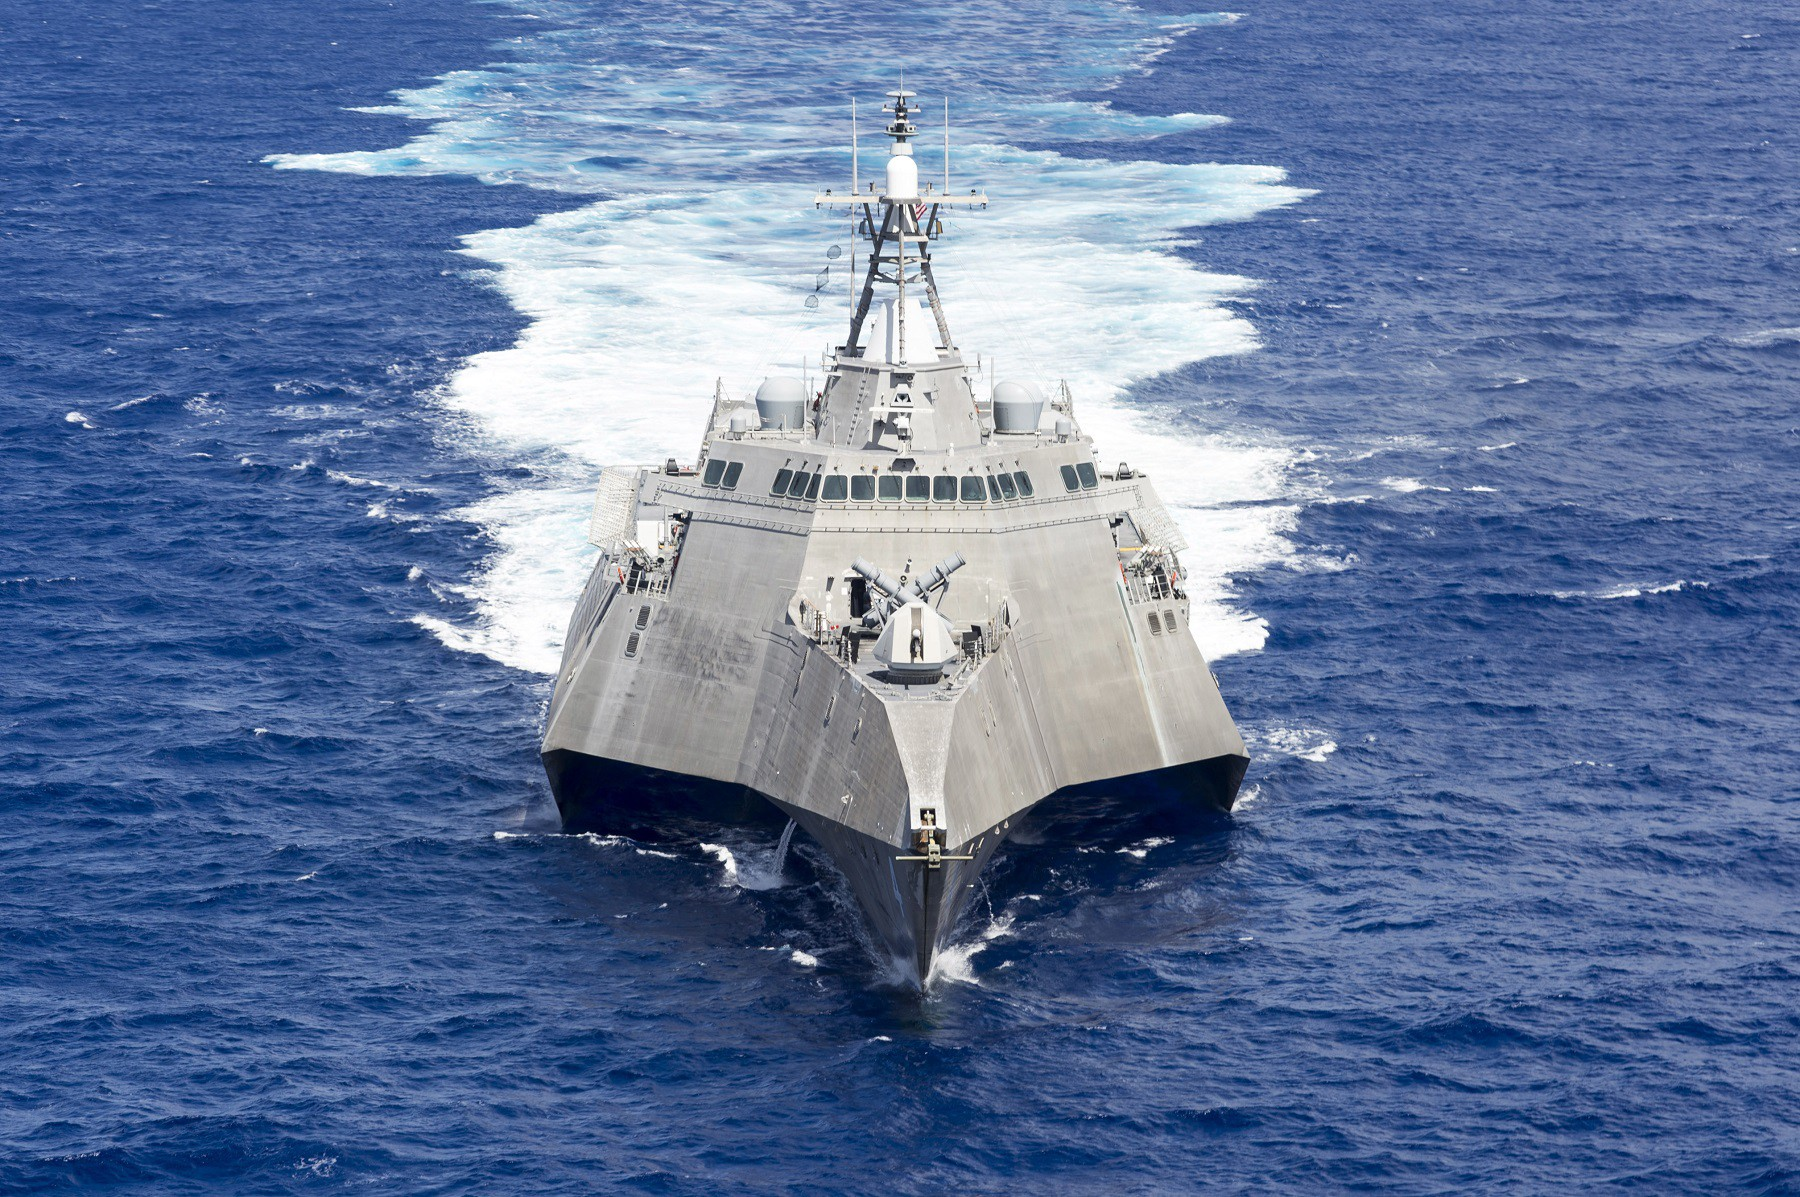 The 'Independence'-class Littoral Combat Ship USS 'Coronado' in October 2016. U.S. Navy photo